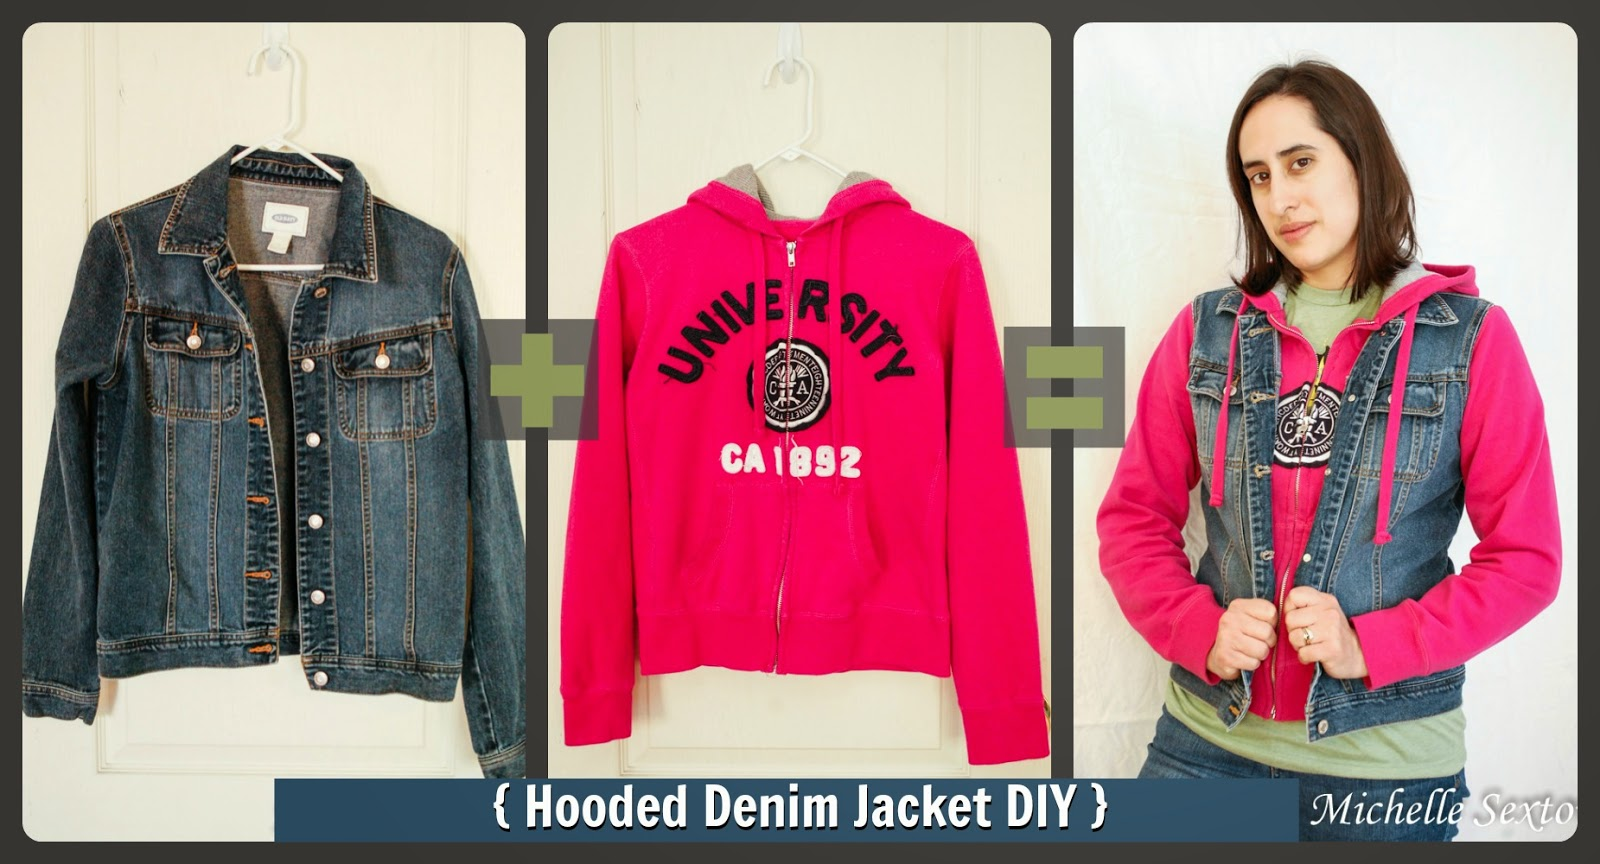 Hooded Denim Jacket DIY - this tutorial provides an easy way to make a hooded denim jacket with a minimal amount of sewing @ SoHeresMyLife.com - click through and learn how